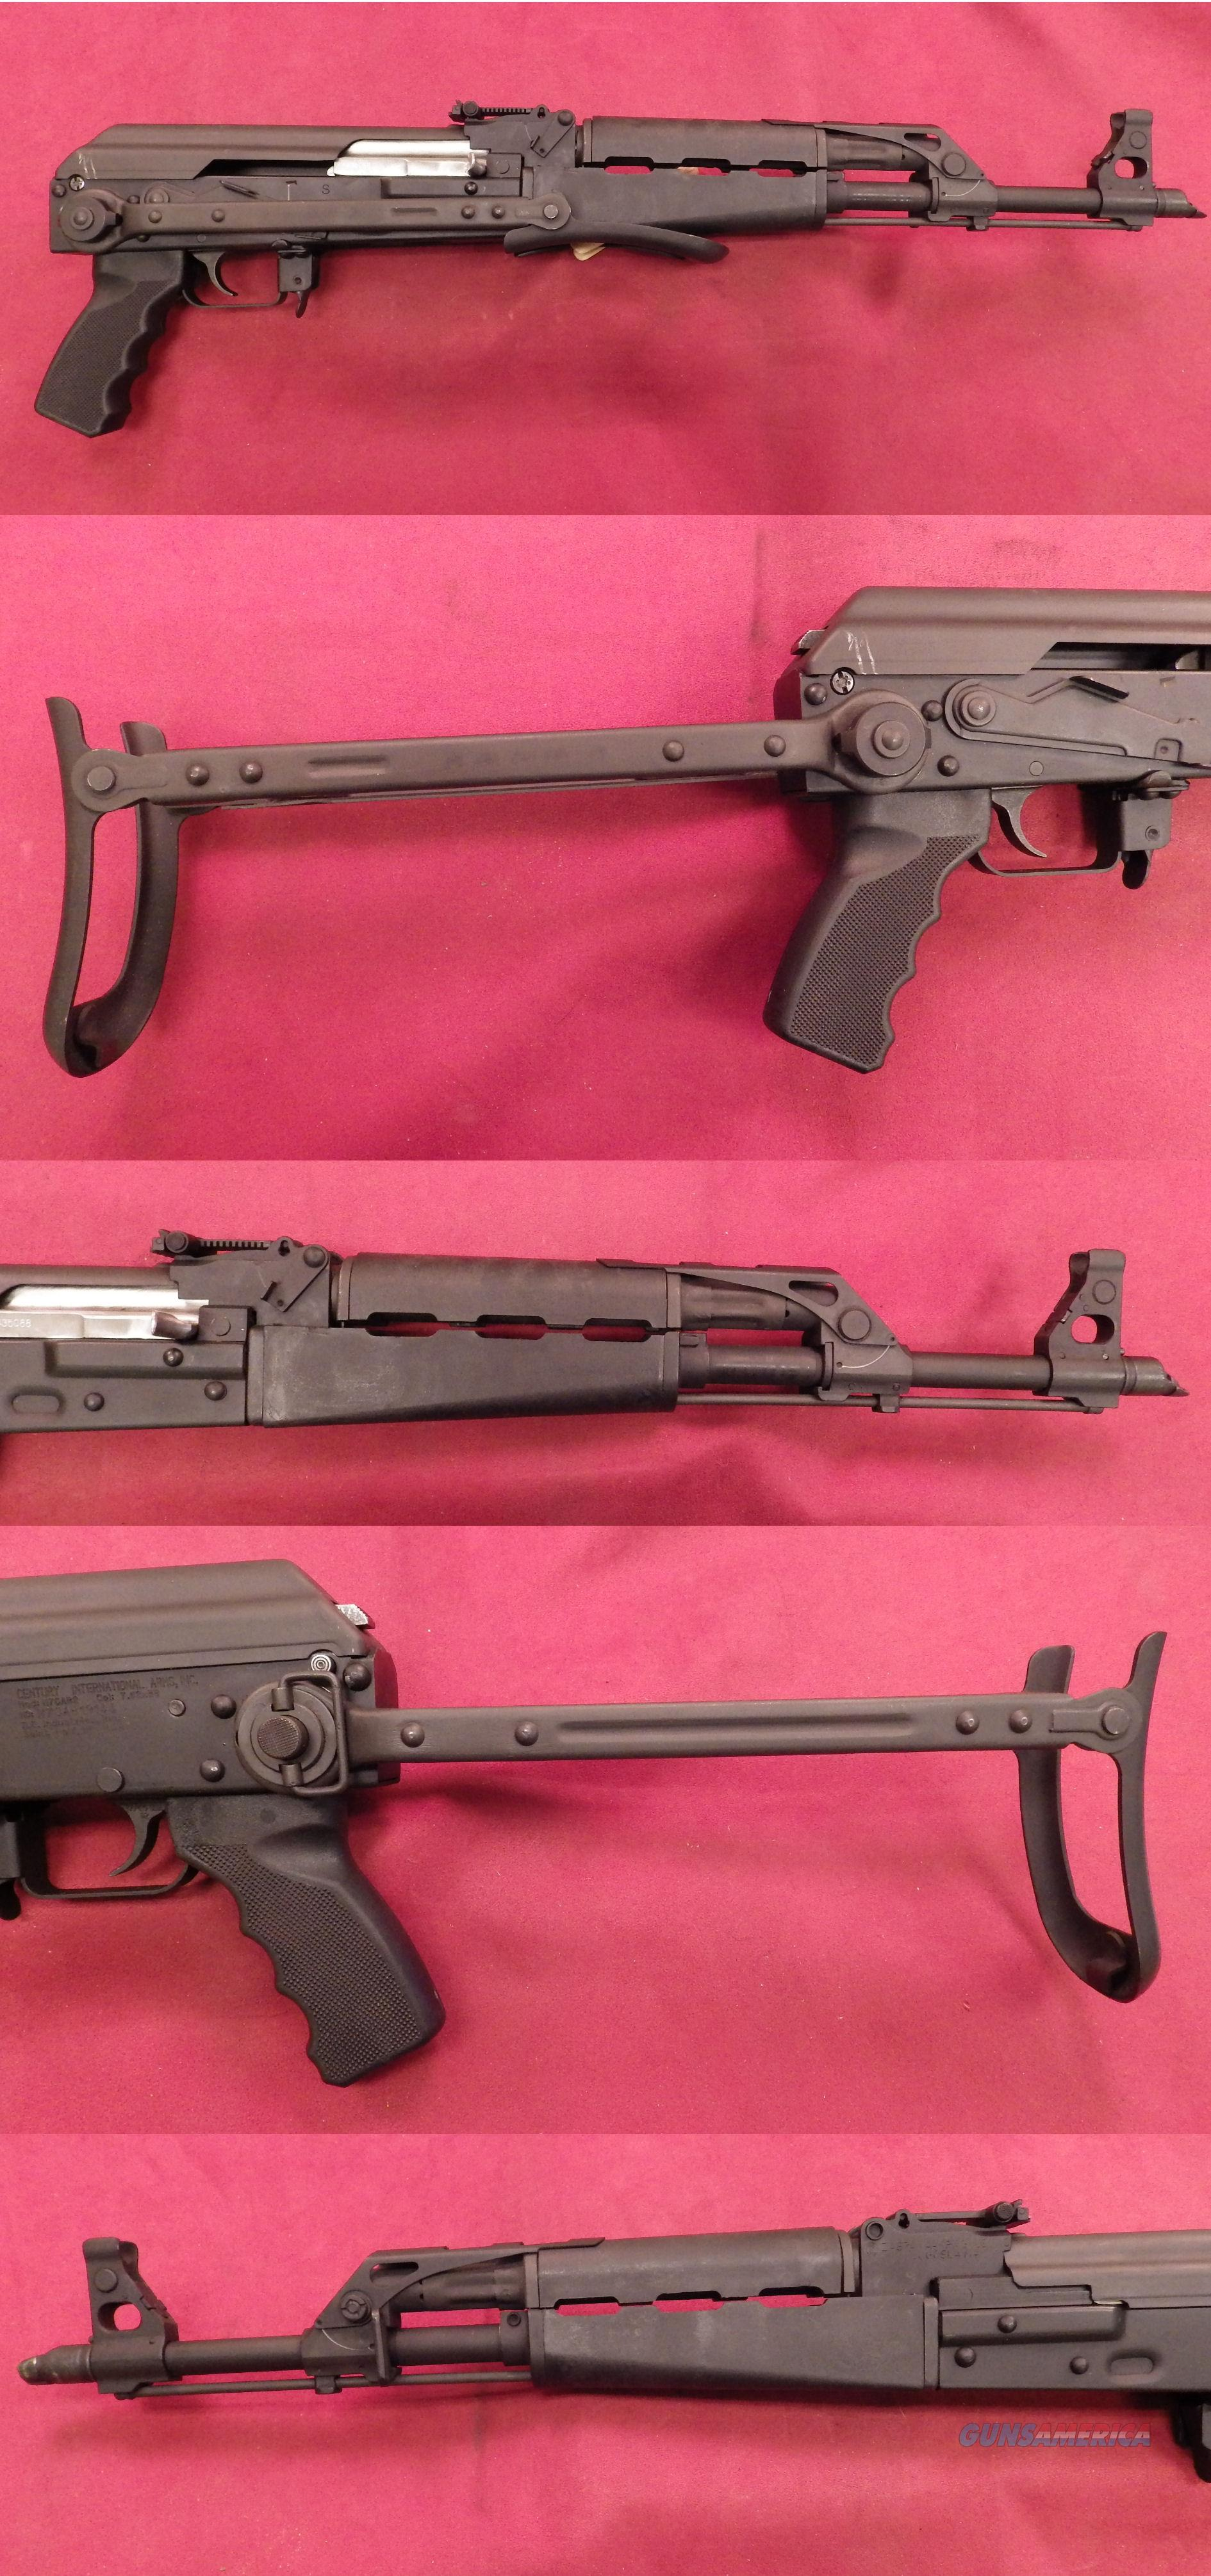 Zastava C.A.I.  AK-47 7.62x39mm  *MUST CALL*  Guns > Rifles > XYZ Misc Rifles